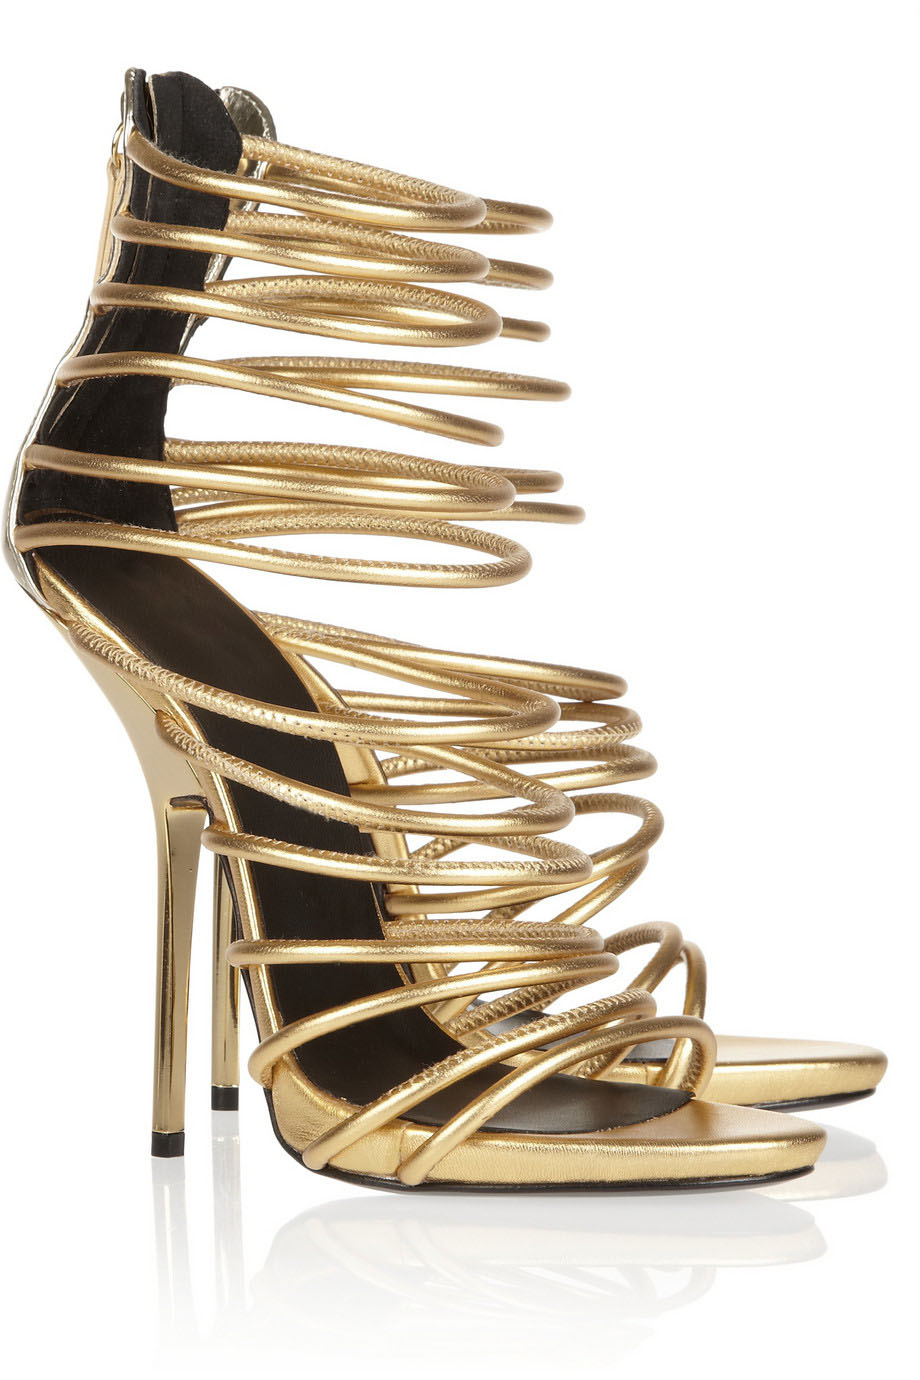 Compare Prices on Gold Gladiator Heels- Online Shopping/Buy Low